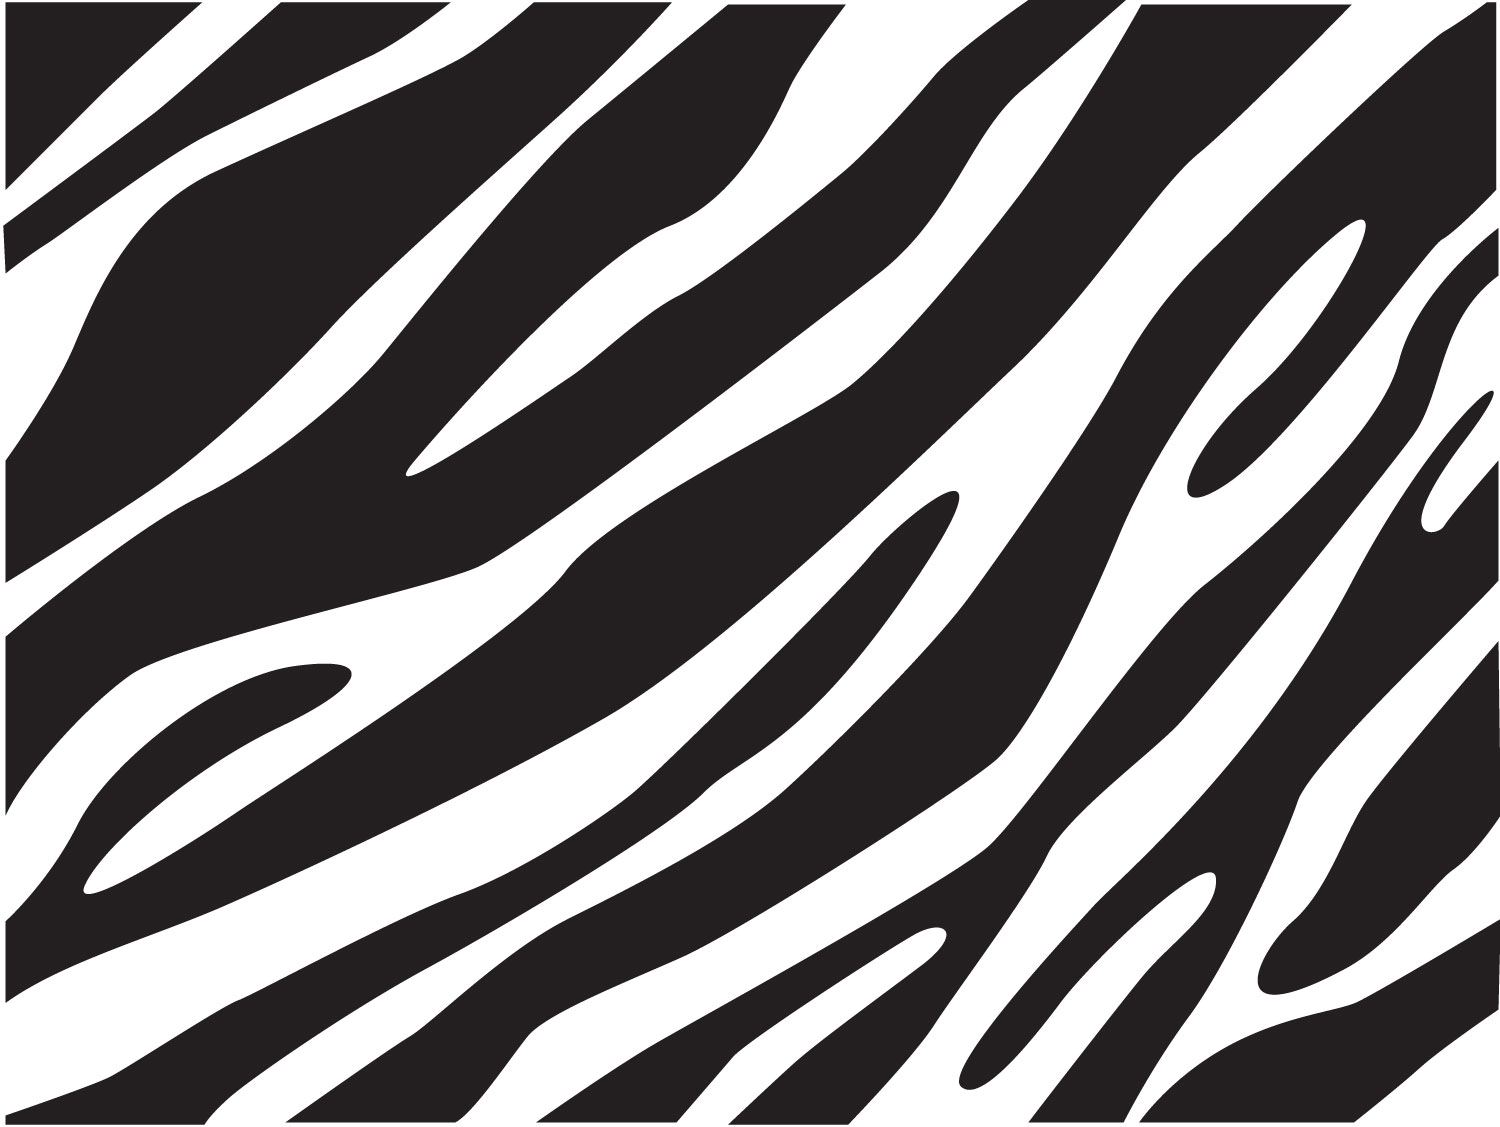 zebra print wallpaper 2735 1500x1127 px. Black Bedroom Furniture Sets. Home Design Ideas